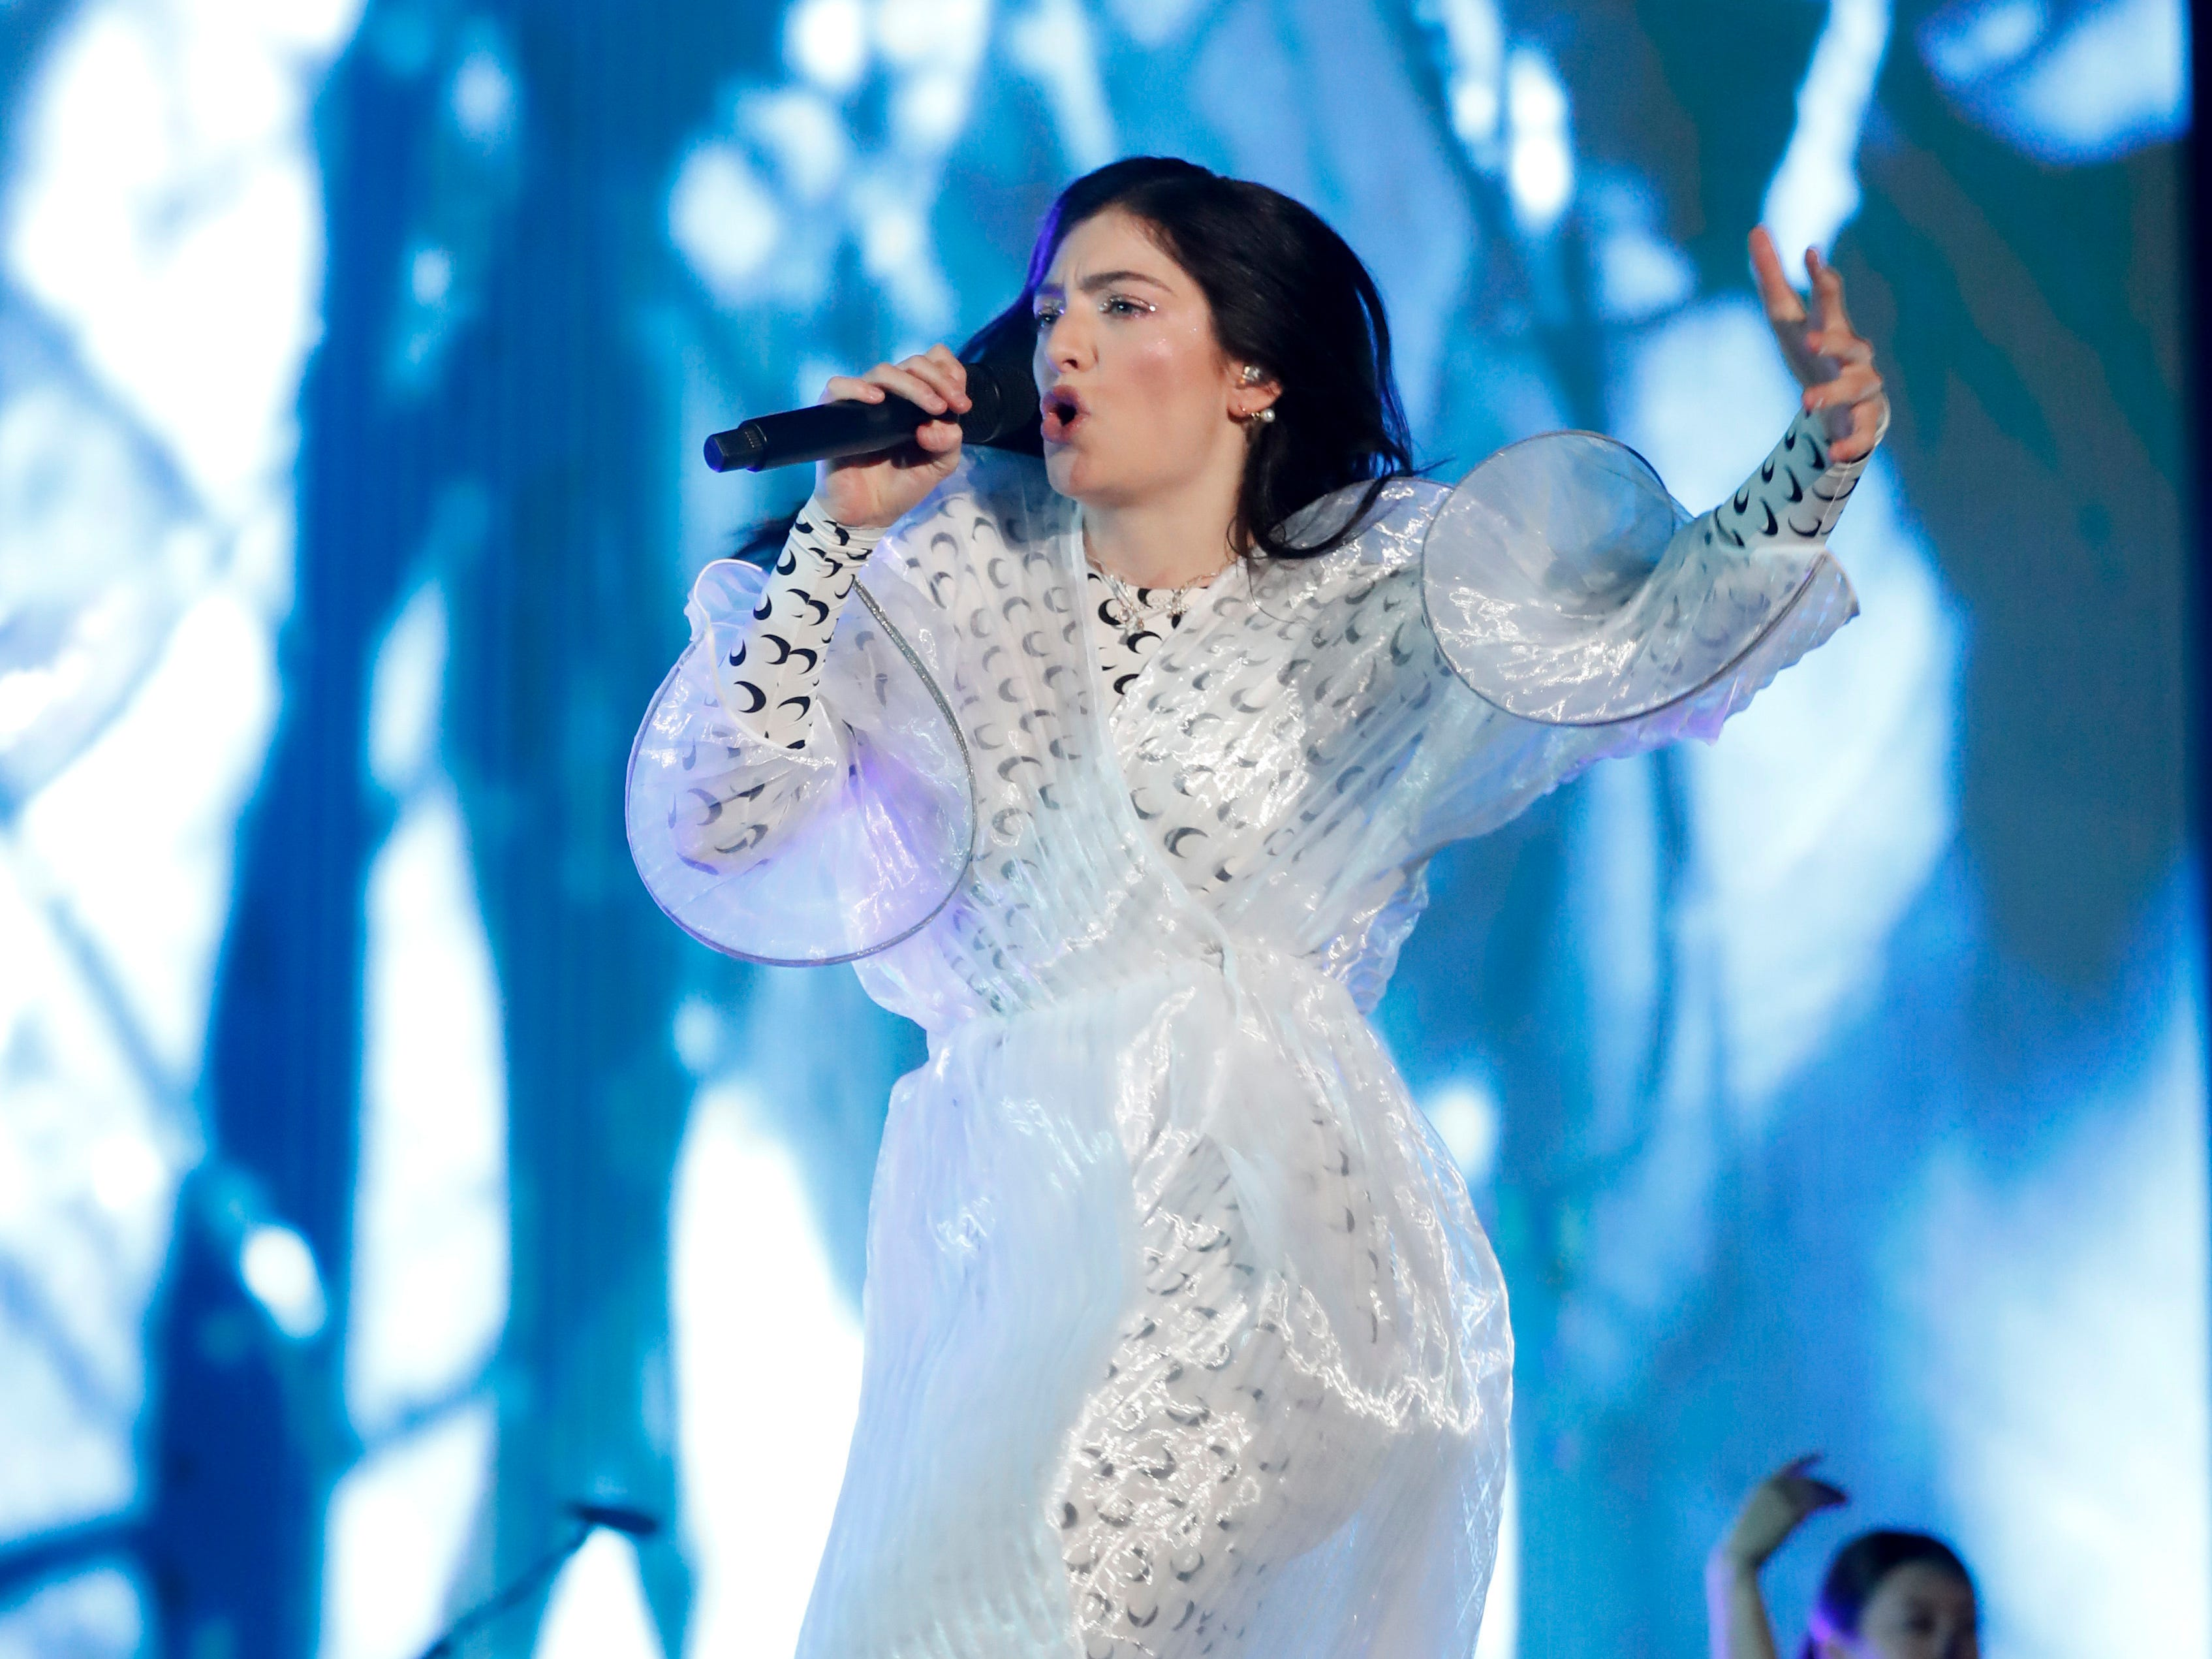 New Zealand singer and songwriter Lorde, performs during the Corona Capital music festival in Mexico City, Saturday, Nov. 17, 2018. Nine Inch Nails, Lorde, and Robbie Williams topped the stacked bill for the two-day music festival. (AP Photo/Eduardo Verdugo) ORG XMIT: WTW108